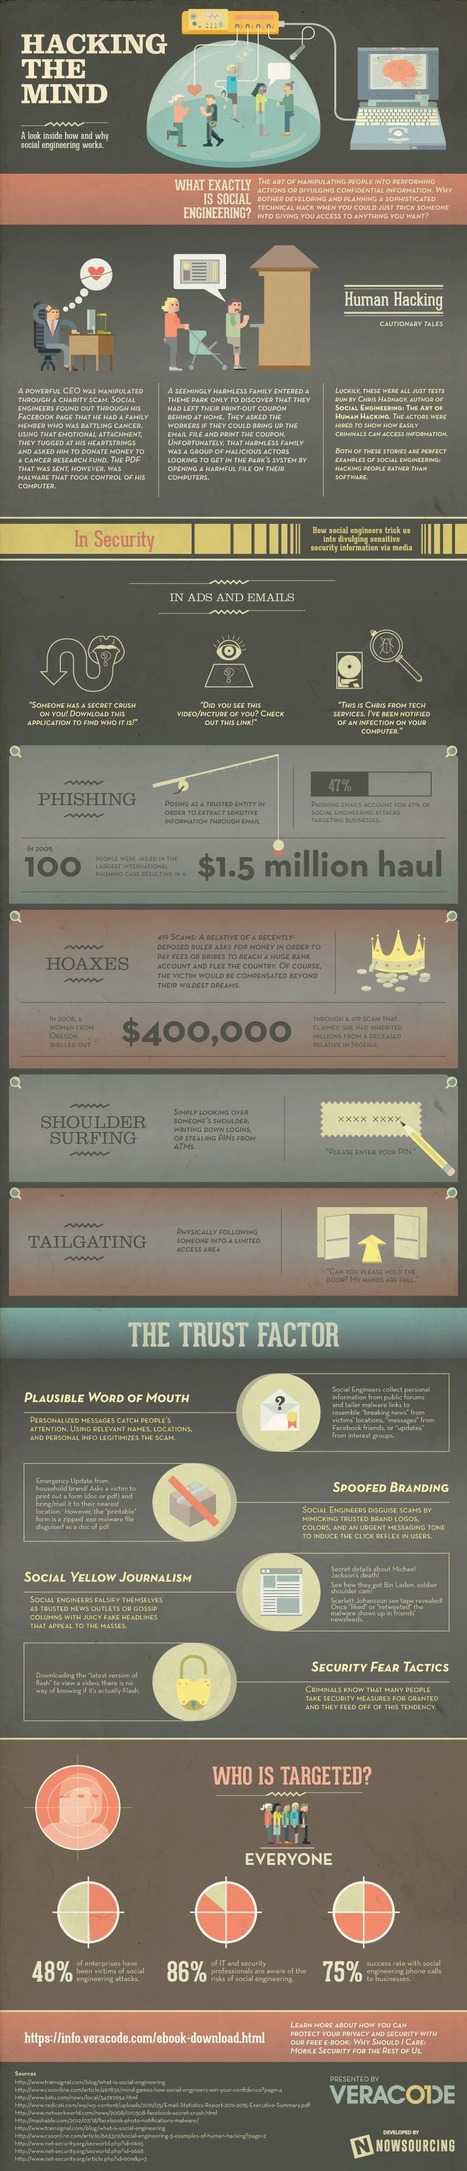 Hacking the Mind: How and Why Social Engineering Works [Infographic] | Business 2 Community | Speculations and Trends | Scoop.it